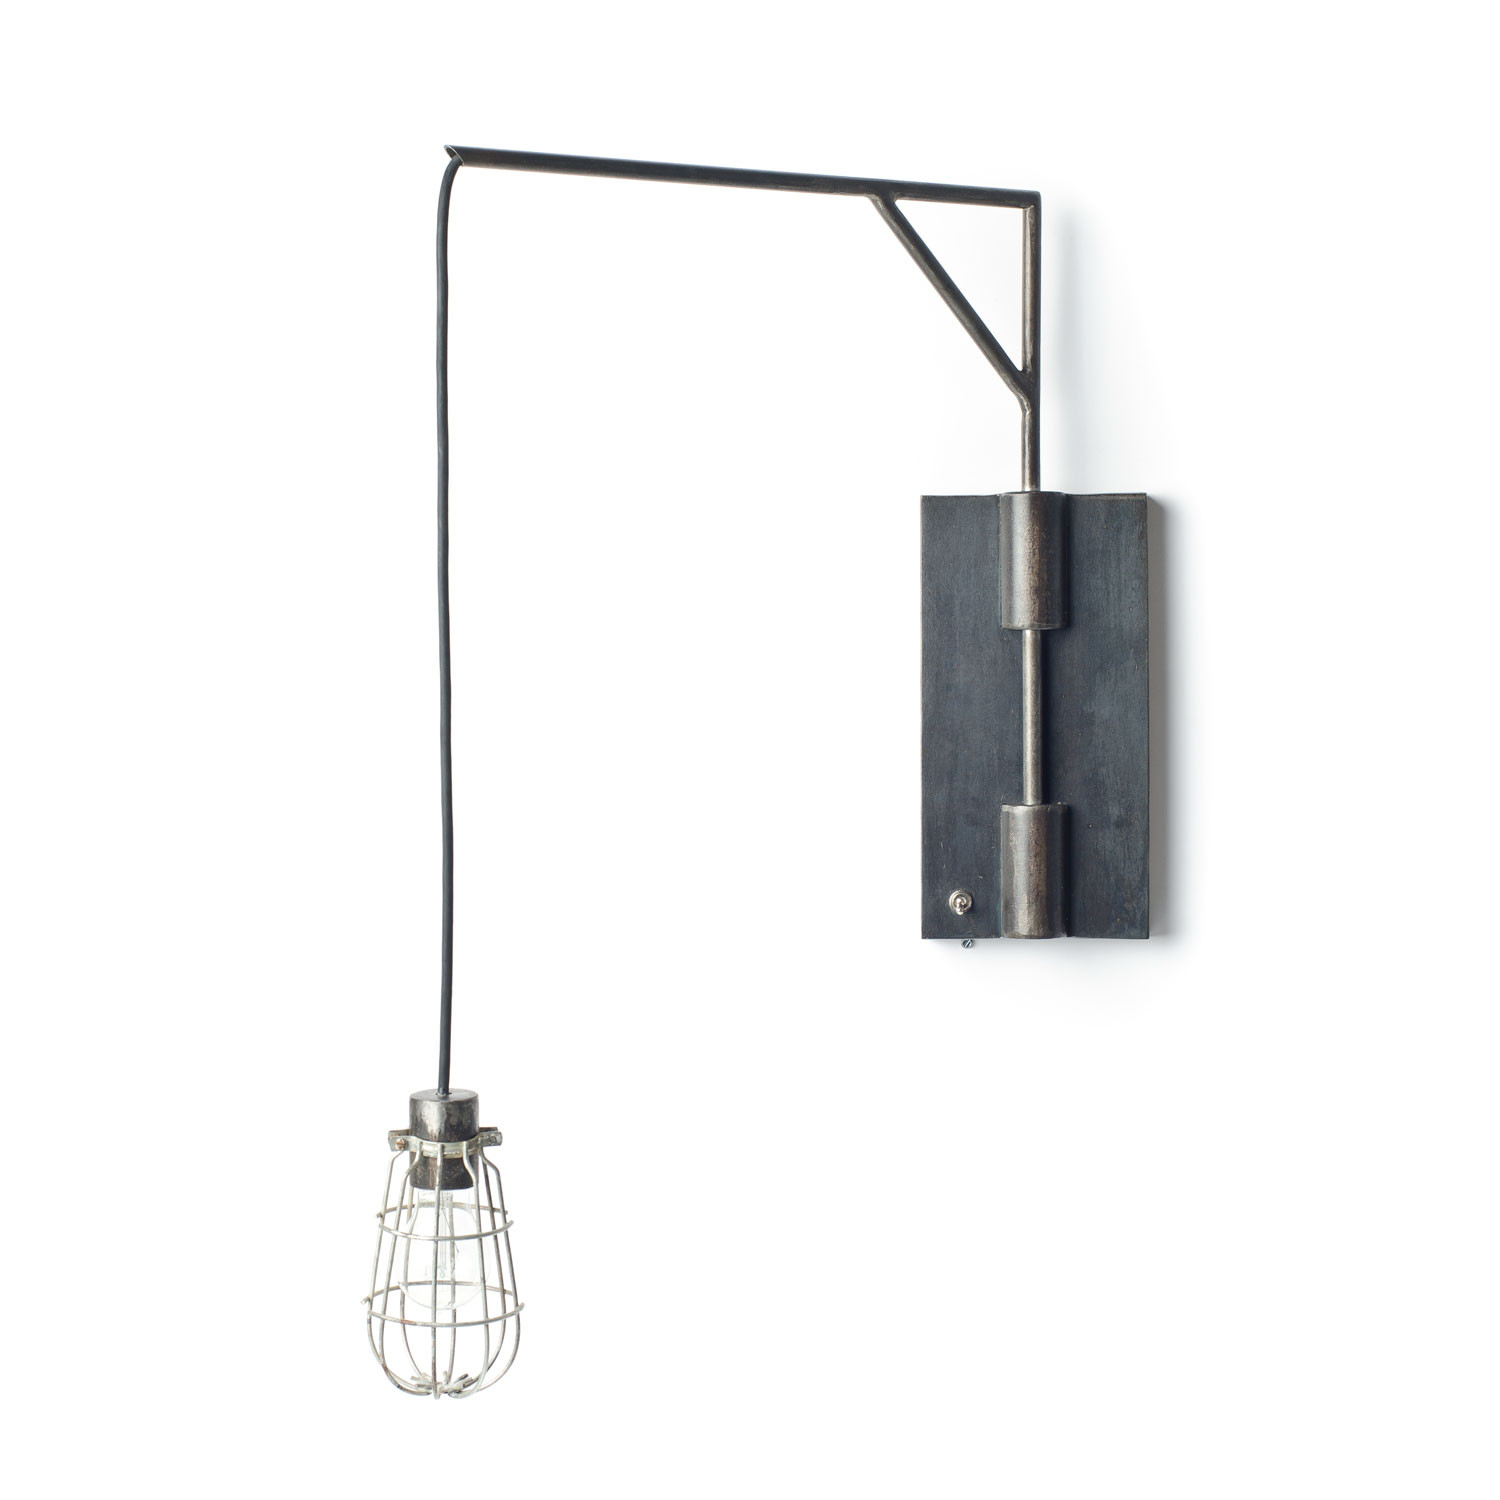 Attirant Swing Arm Wall Sconce